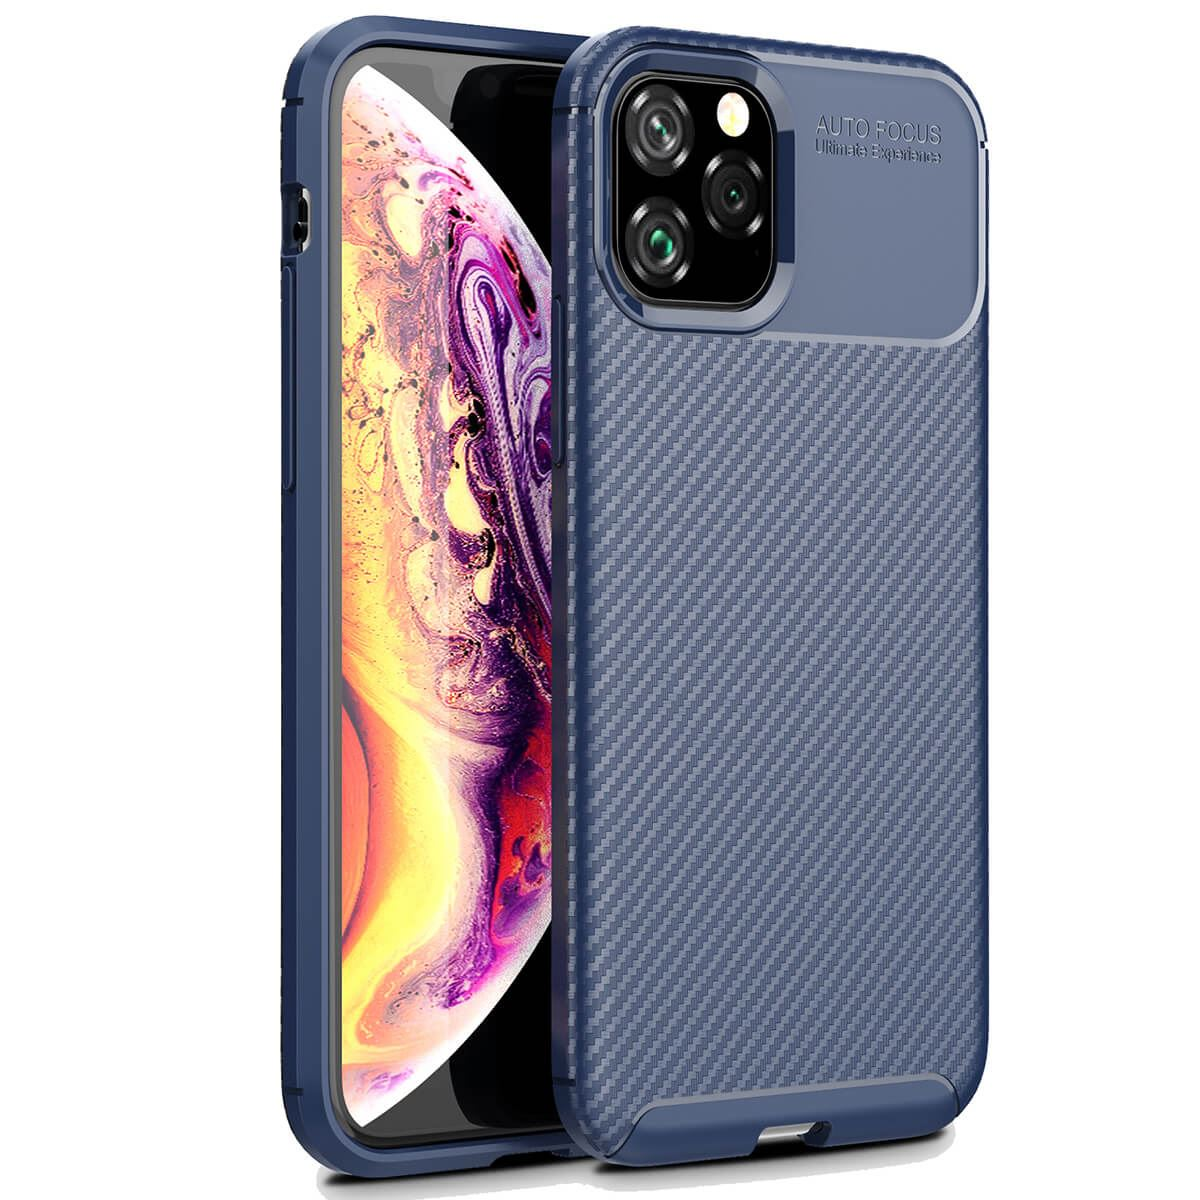 Carbon-Fibre-Soft-Case-For-iPhone-11-X-XR-Max-8-7-6-Plus-Slim-TPU-Silicone-Cover thumbnail 15